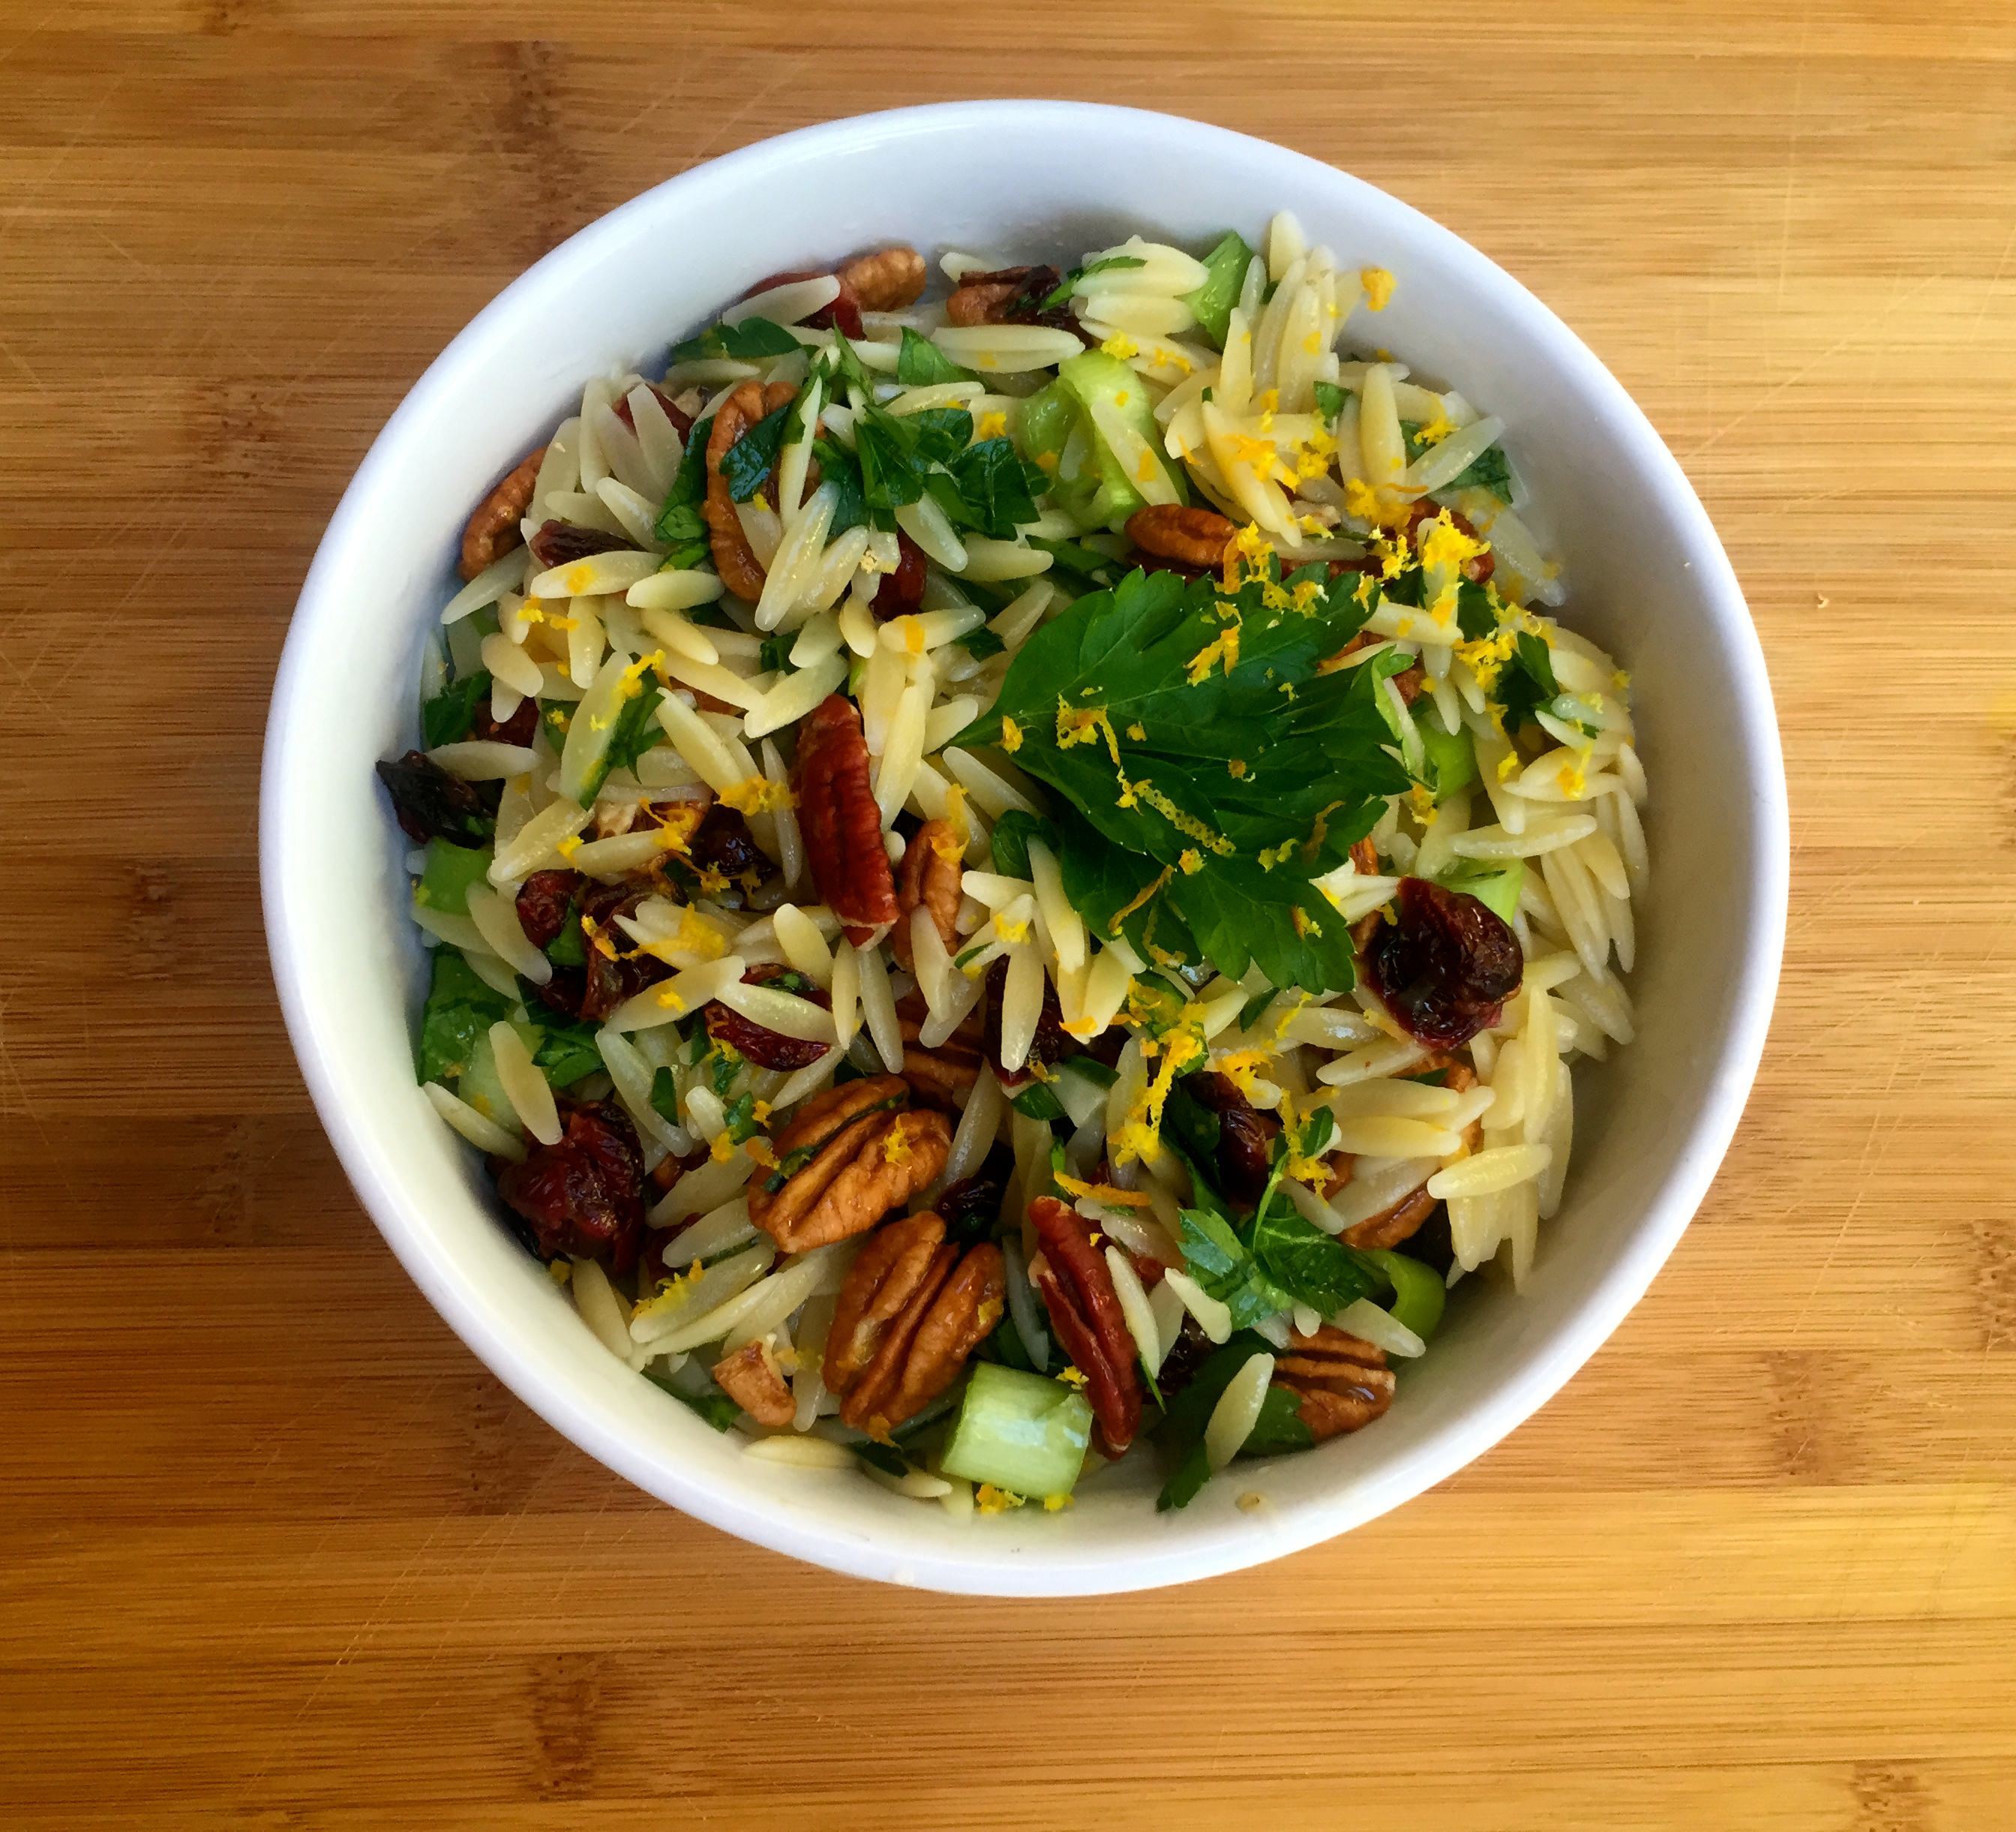 Cranberry Pecan and Orange Orzo Salad - yum